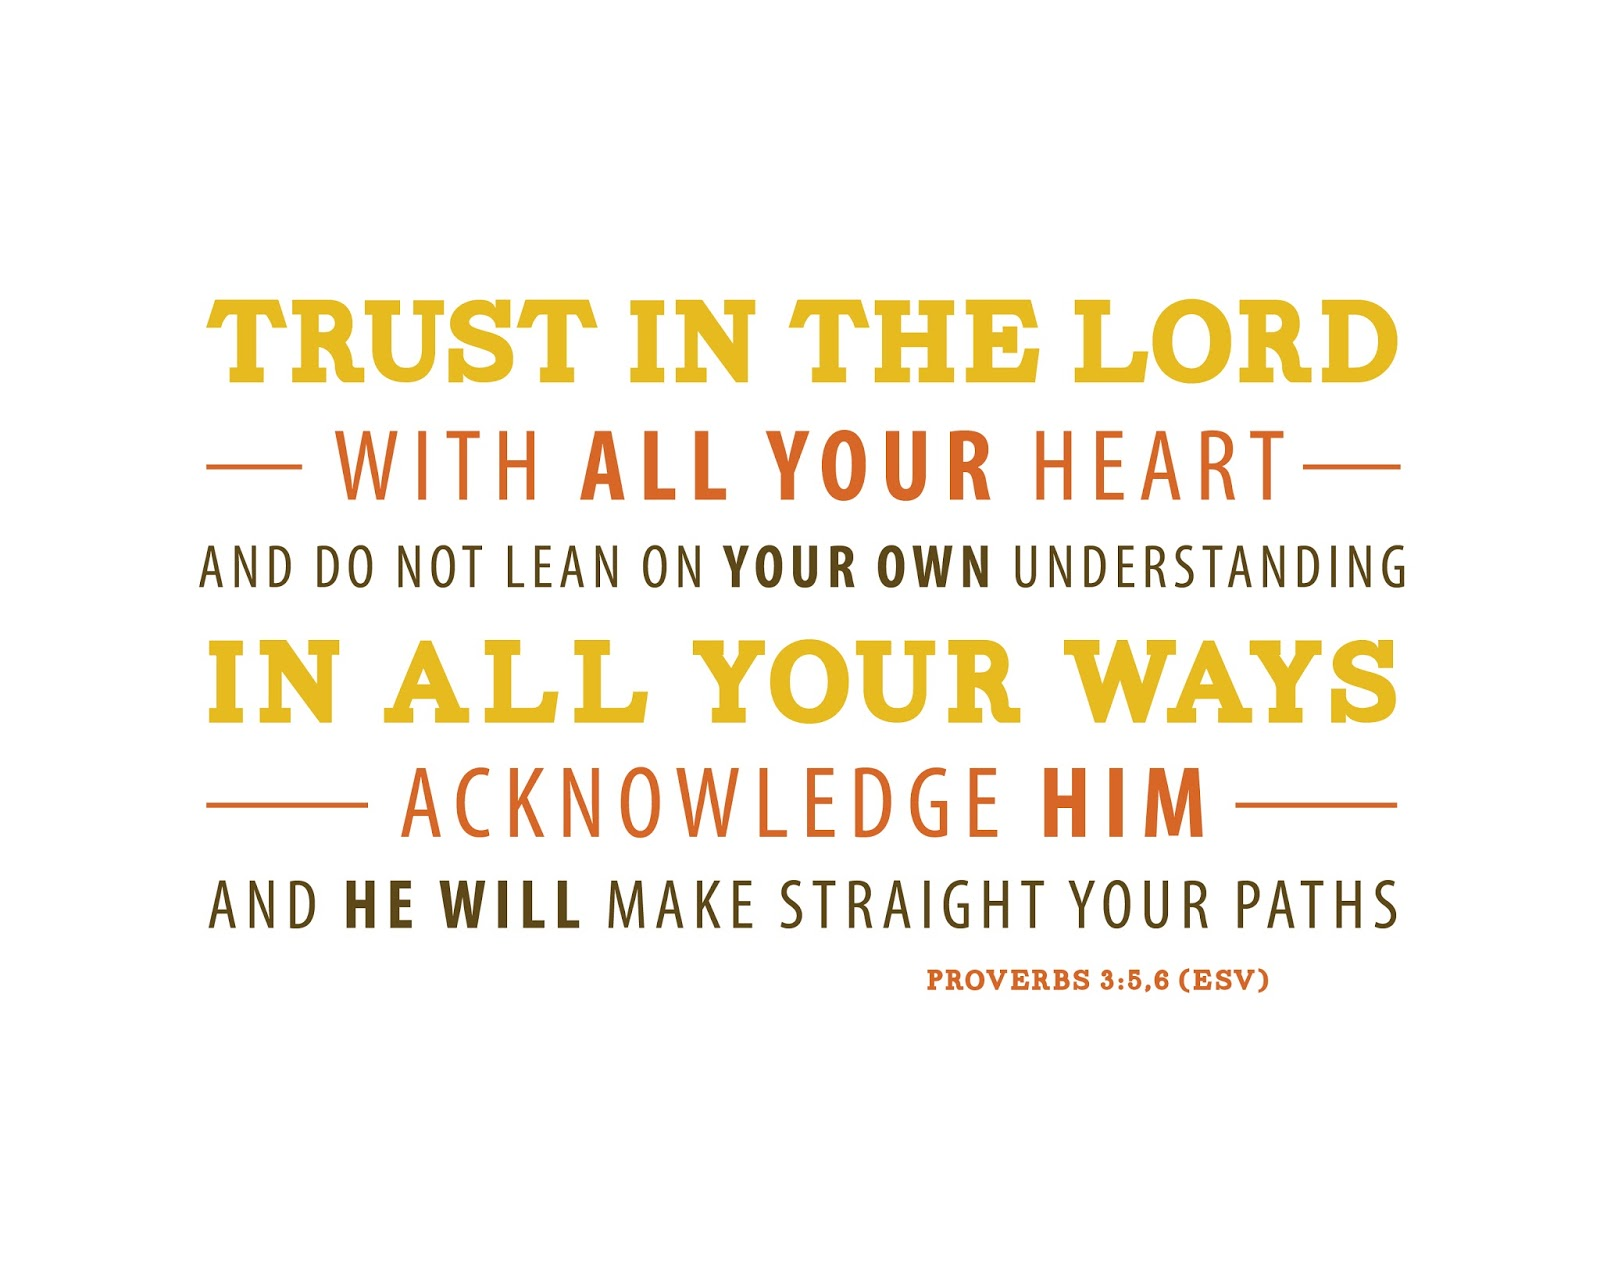 The Power of Trusting the Lord with All Your Heart